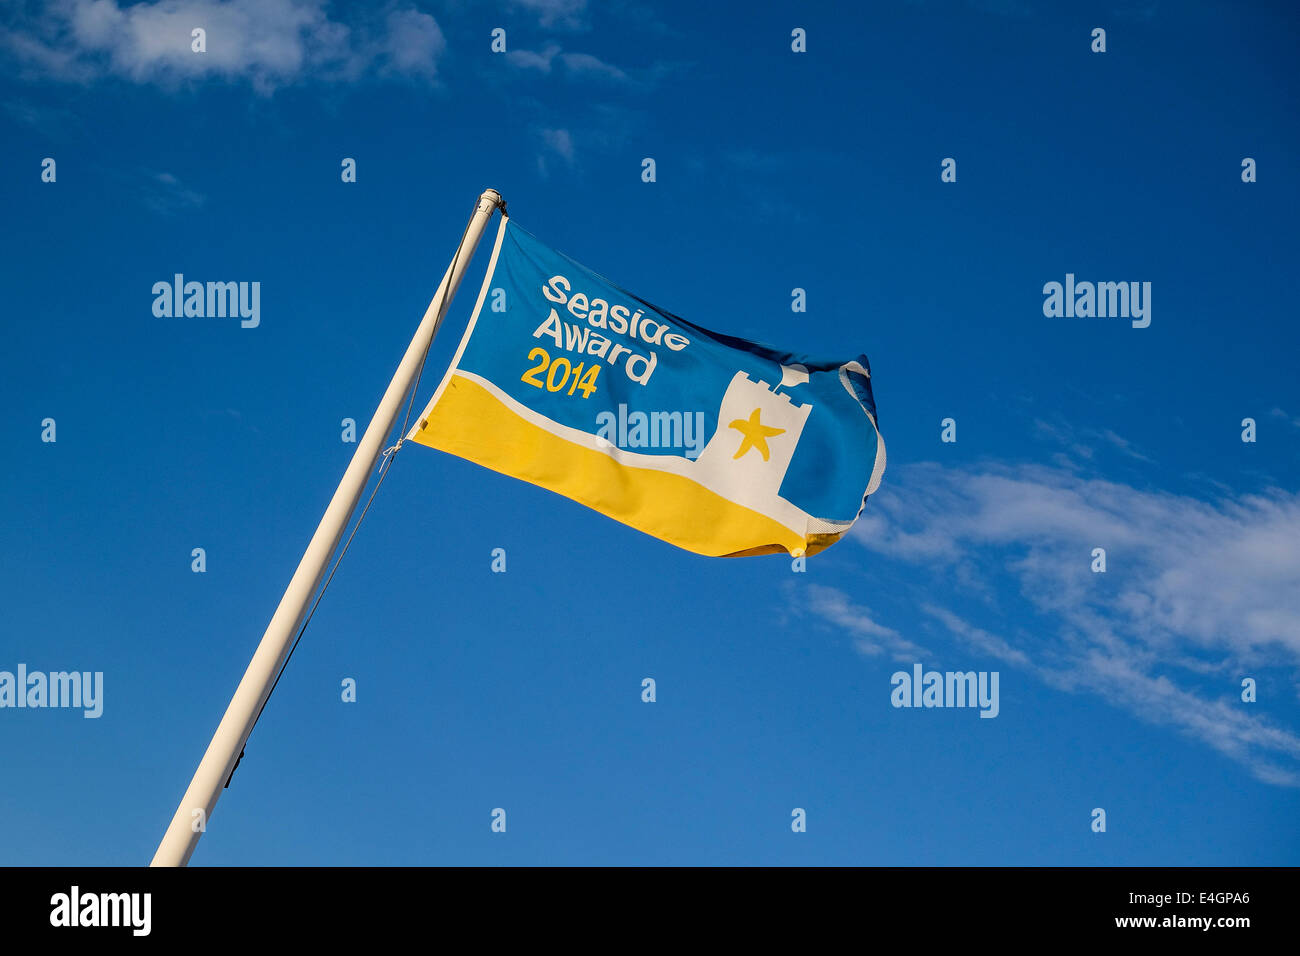 A Seaside Award flag awarded to Jubilee Beach in Southend. - Stock Image